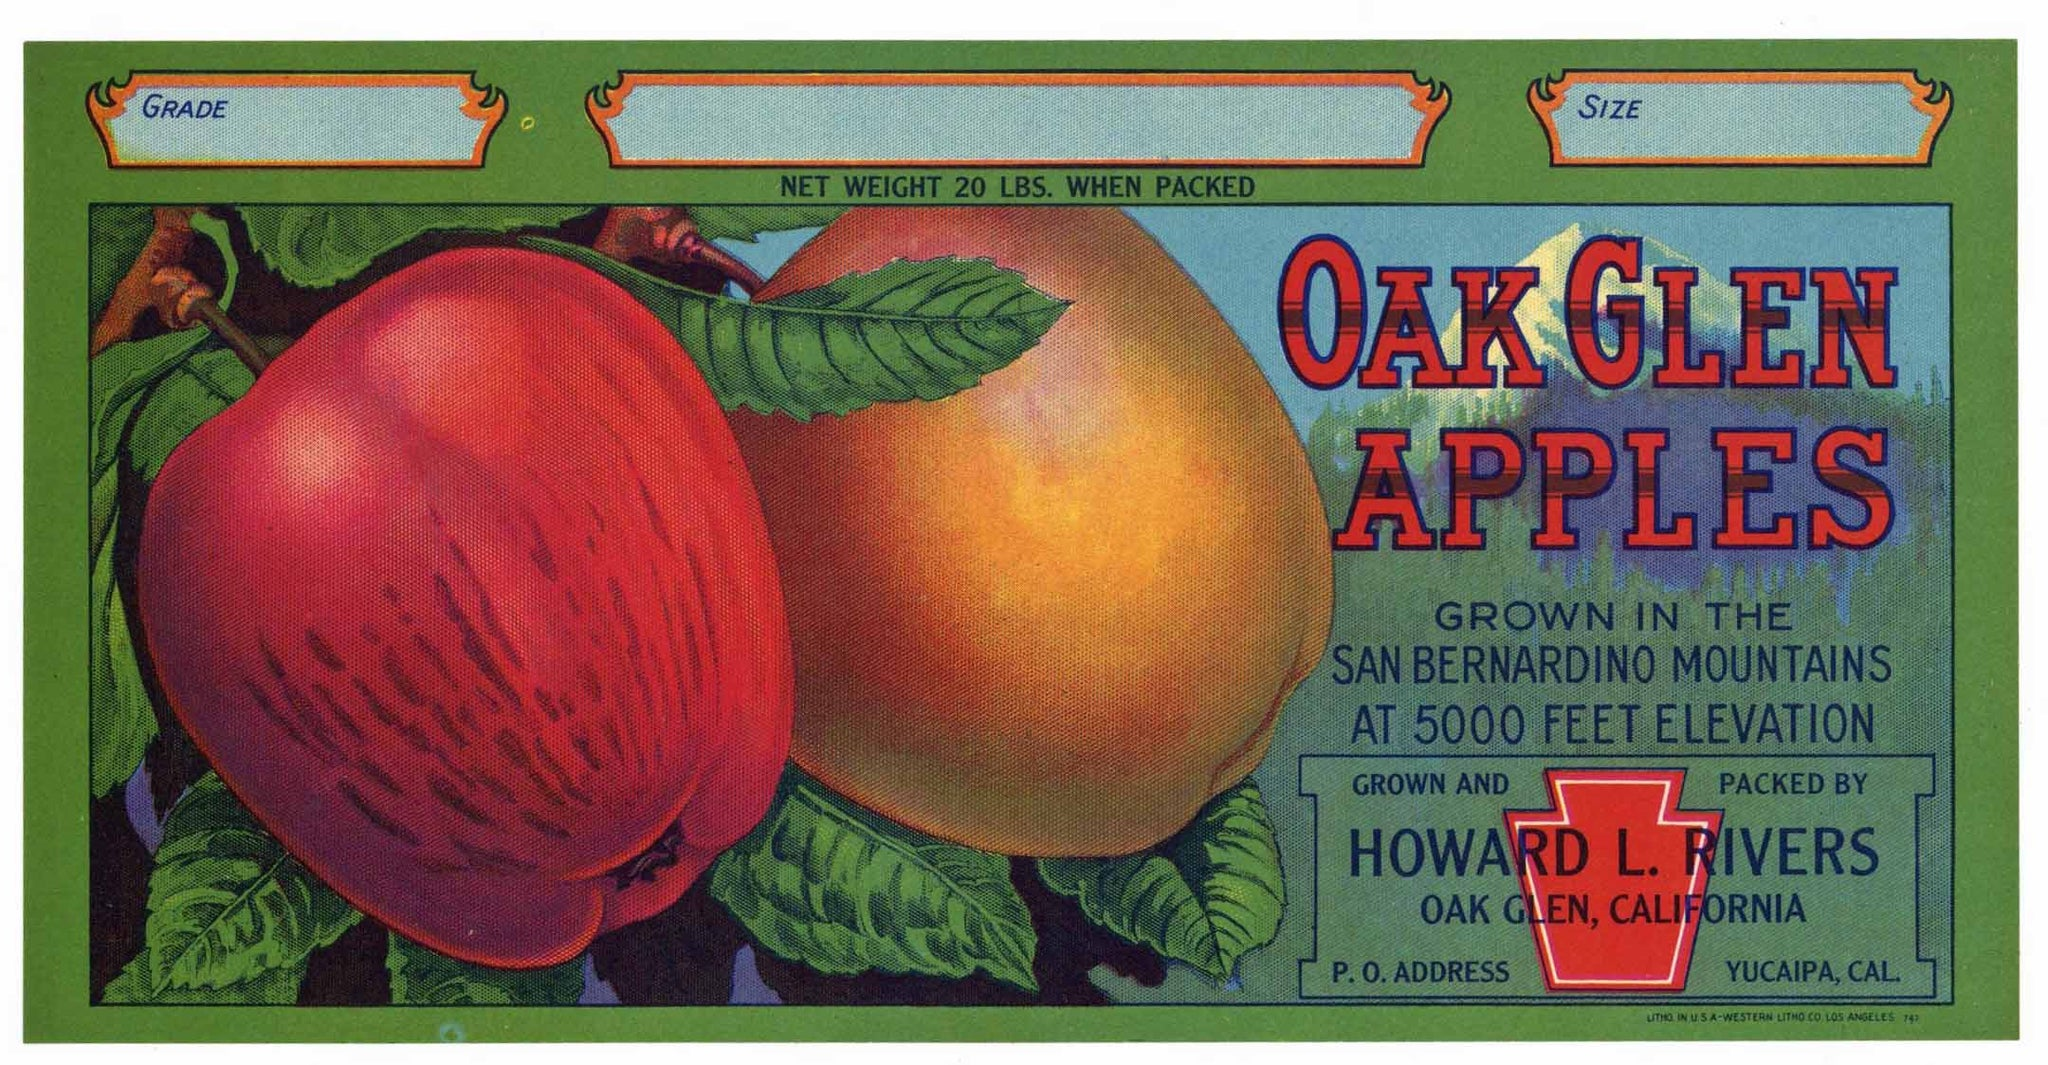 Oak Glen Apples Brand Vintage San Bernardino Apple Crate Label, s